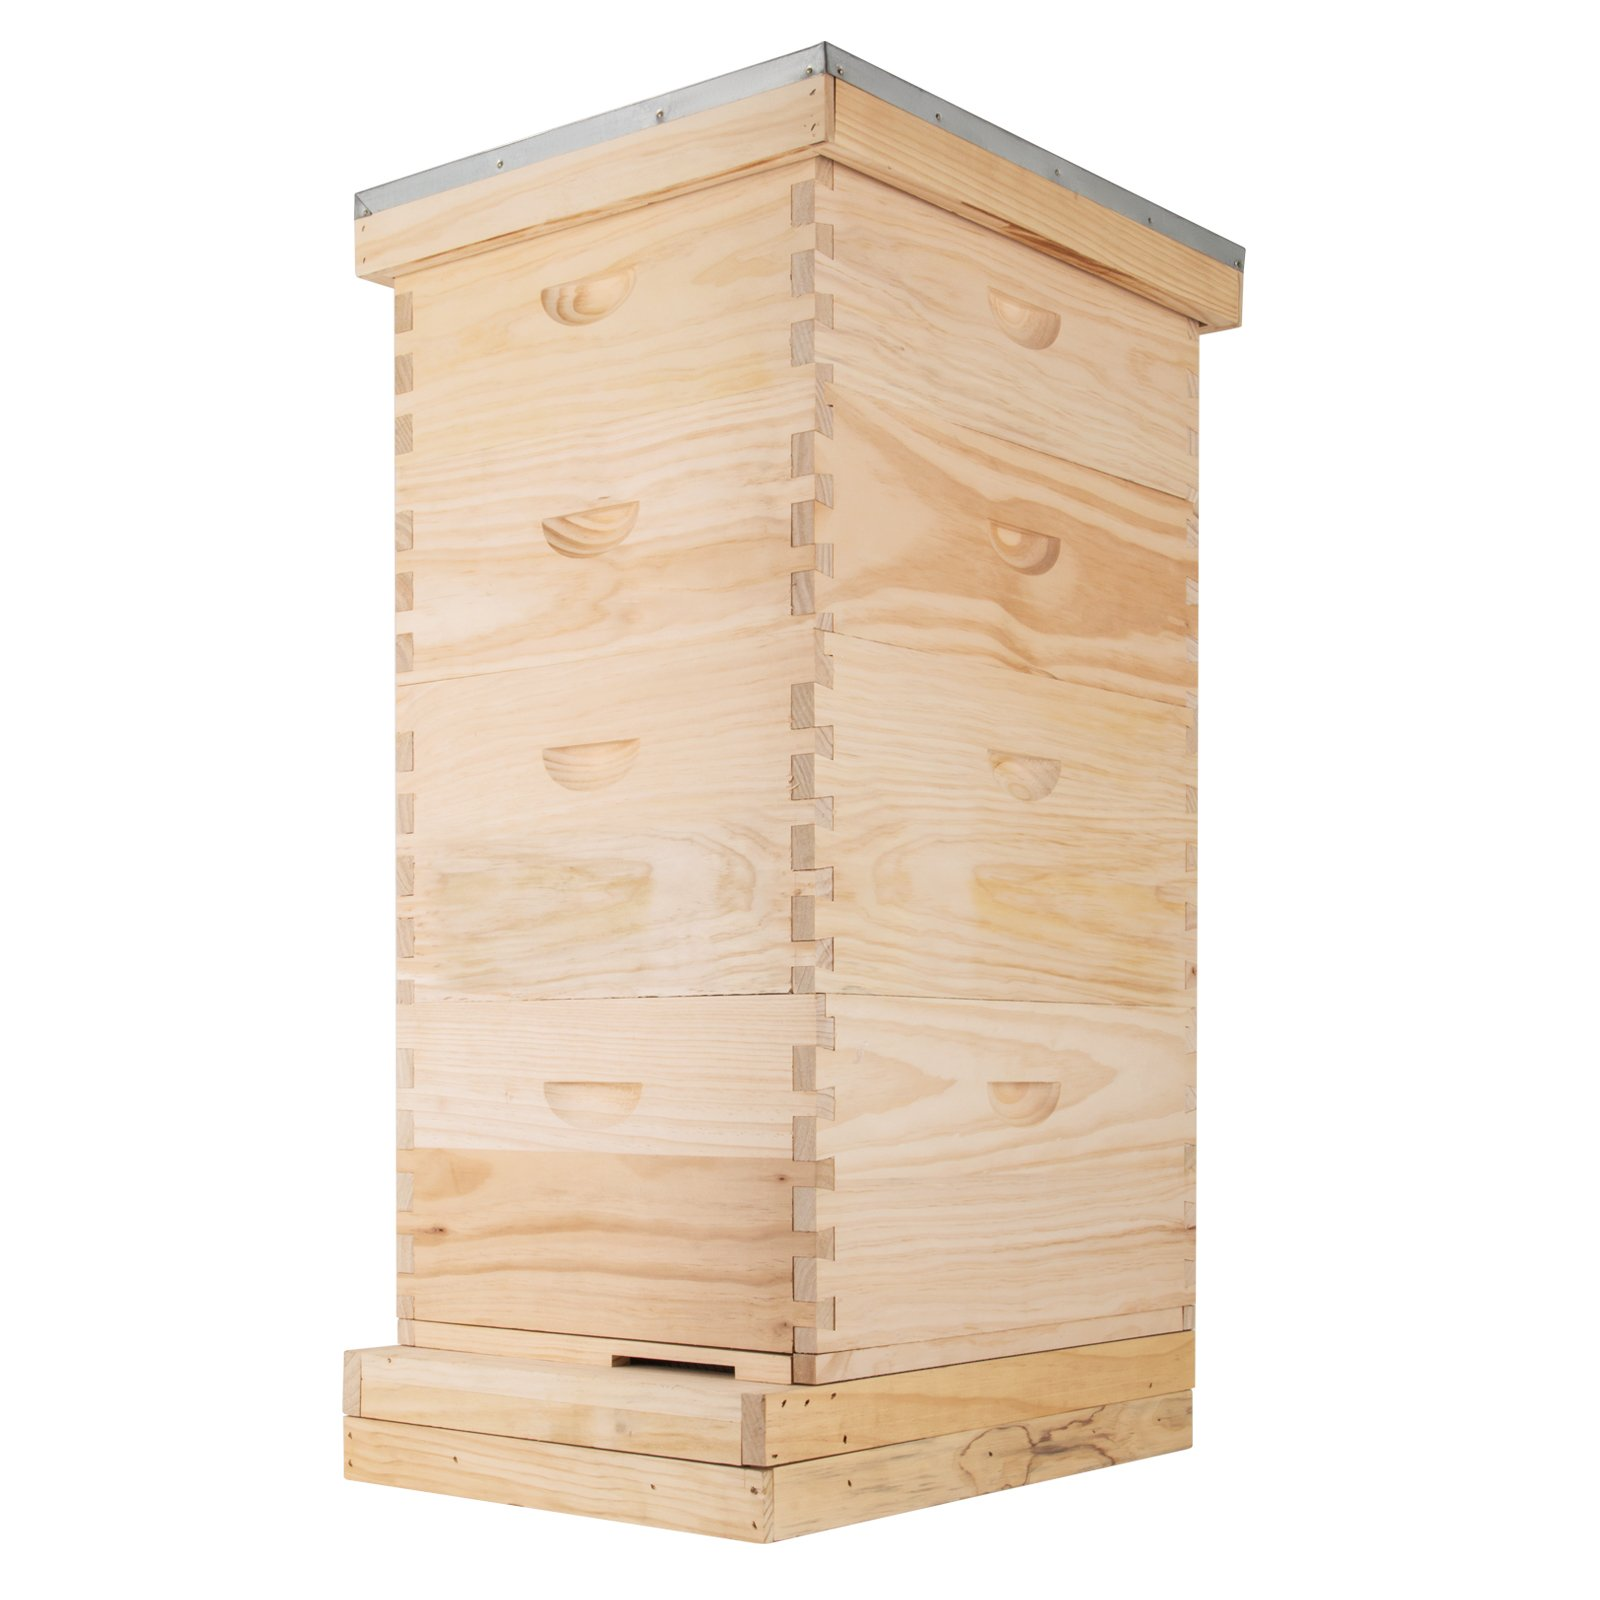 BestEquip Langstroth Beehive Frame 4 Layer Bee Hive House 2 Deep 2 Medium 10 Frame Langstroth Wooden Beehive Frames Kit for Beekeepers